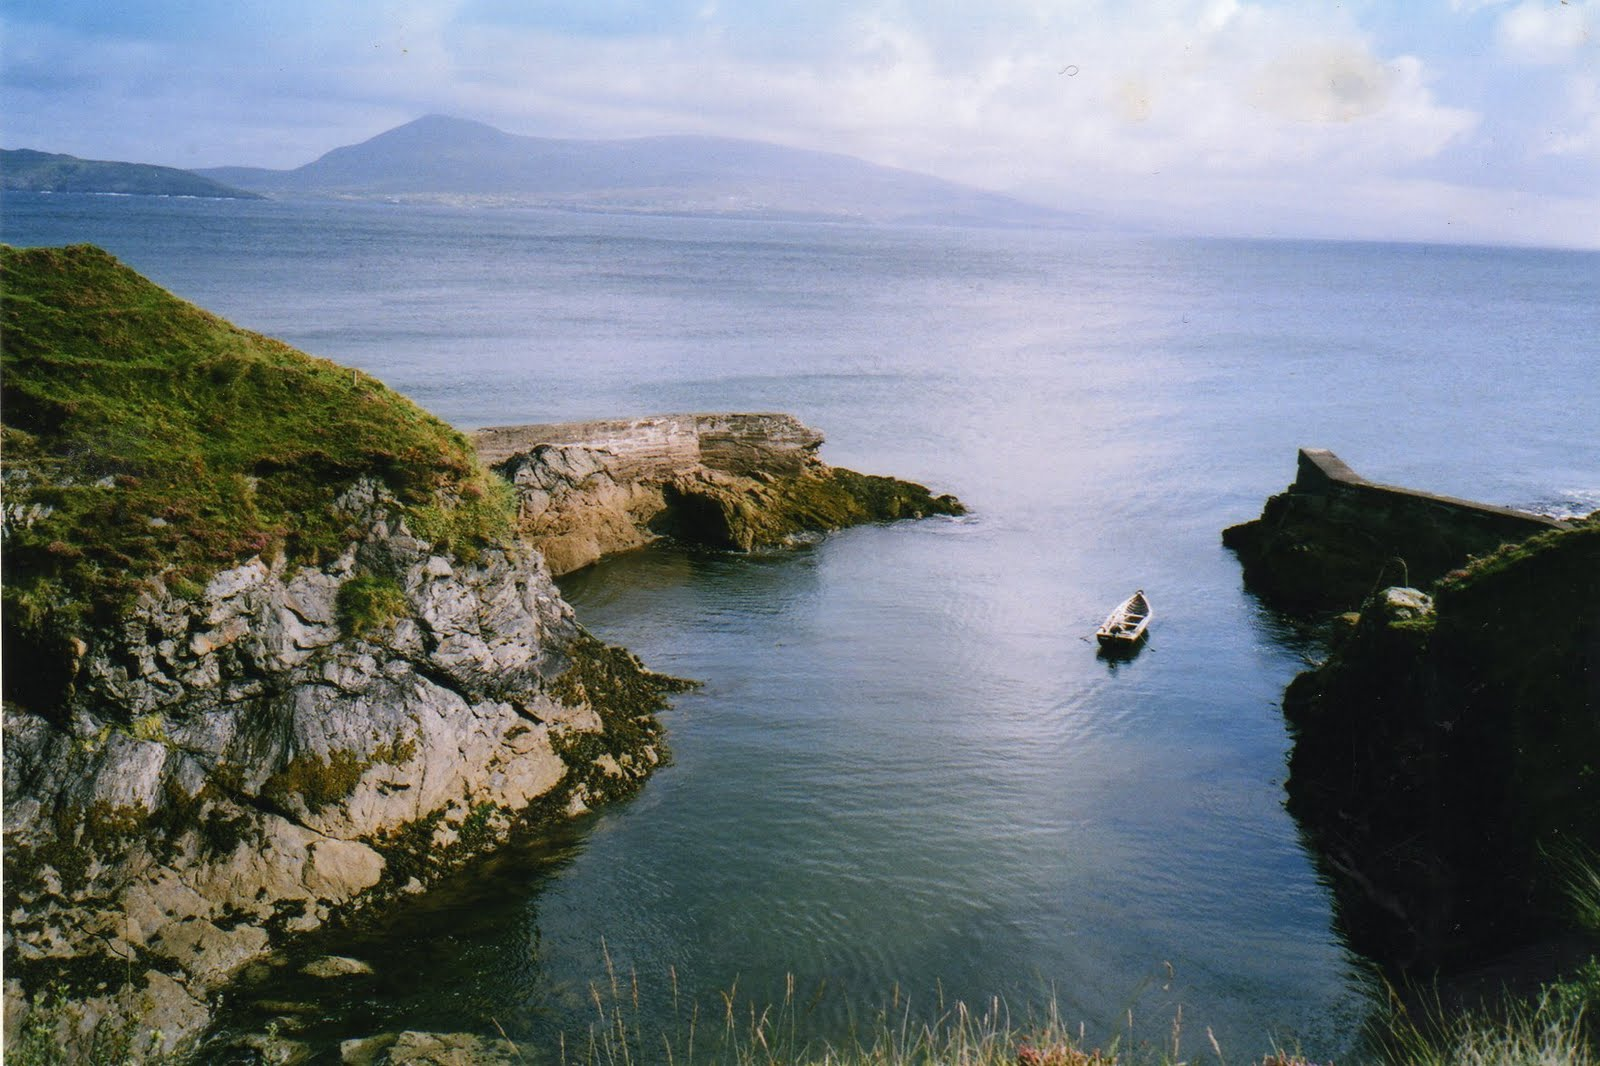 The Cove, Clare Island, Co Mayo